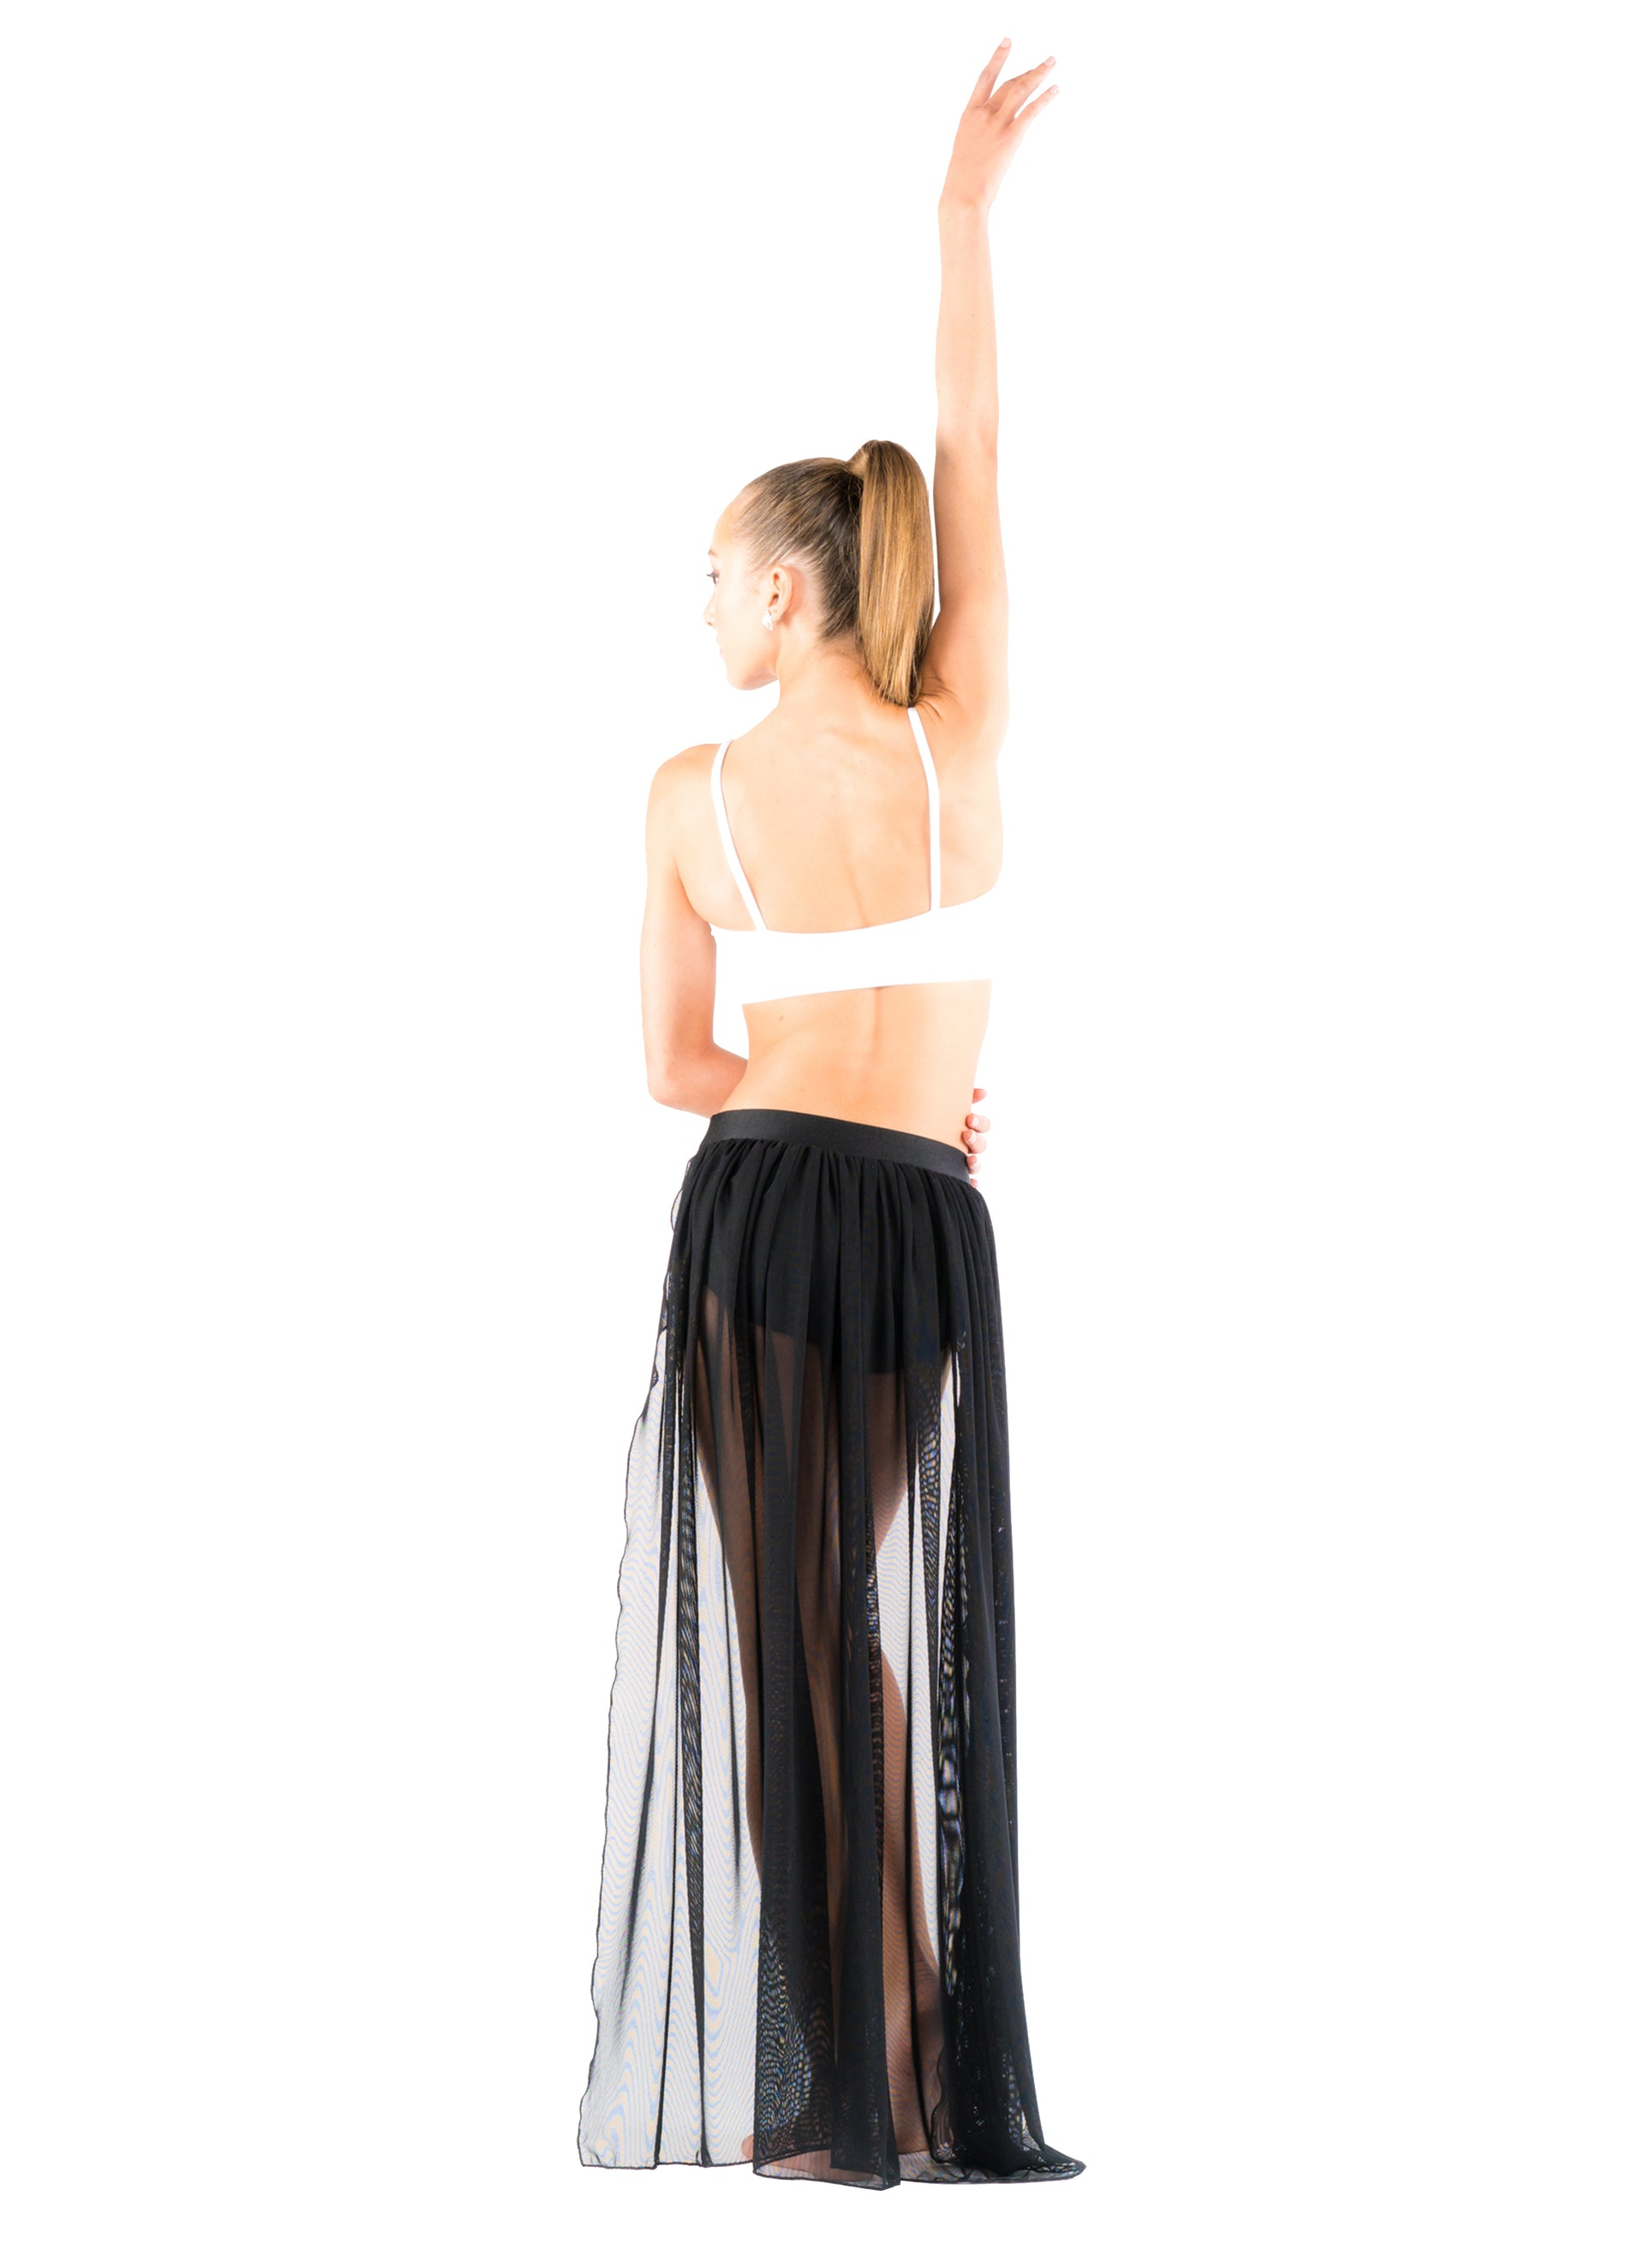 Floor Length Back Skirt - Patrick J Design.com, dance wear, costum costumes, dance